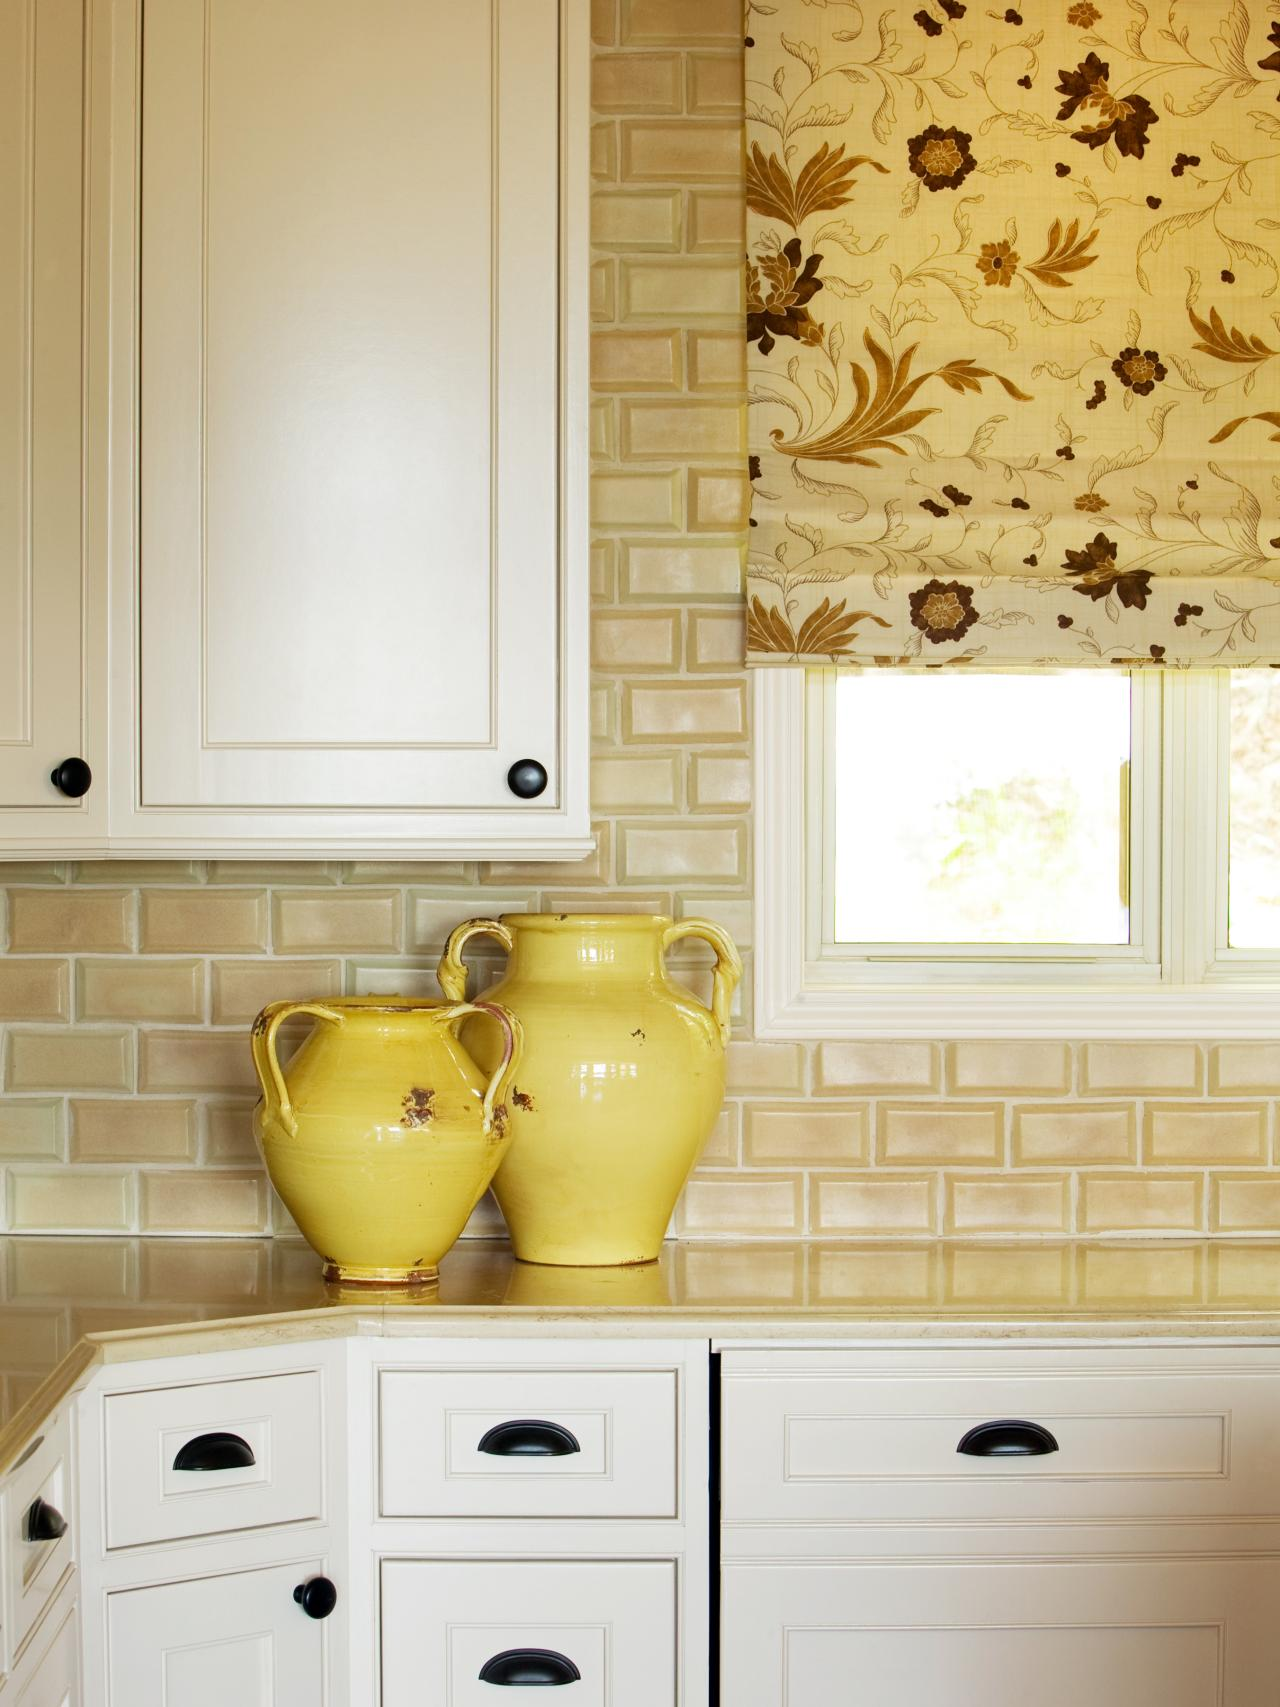 Kitchen Tiles Tile For Small Kitchens Pictures Ideas Tips From Hgtv Hgtv